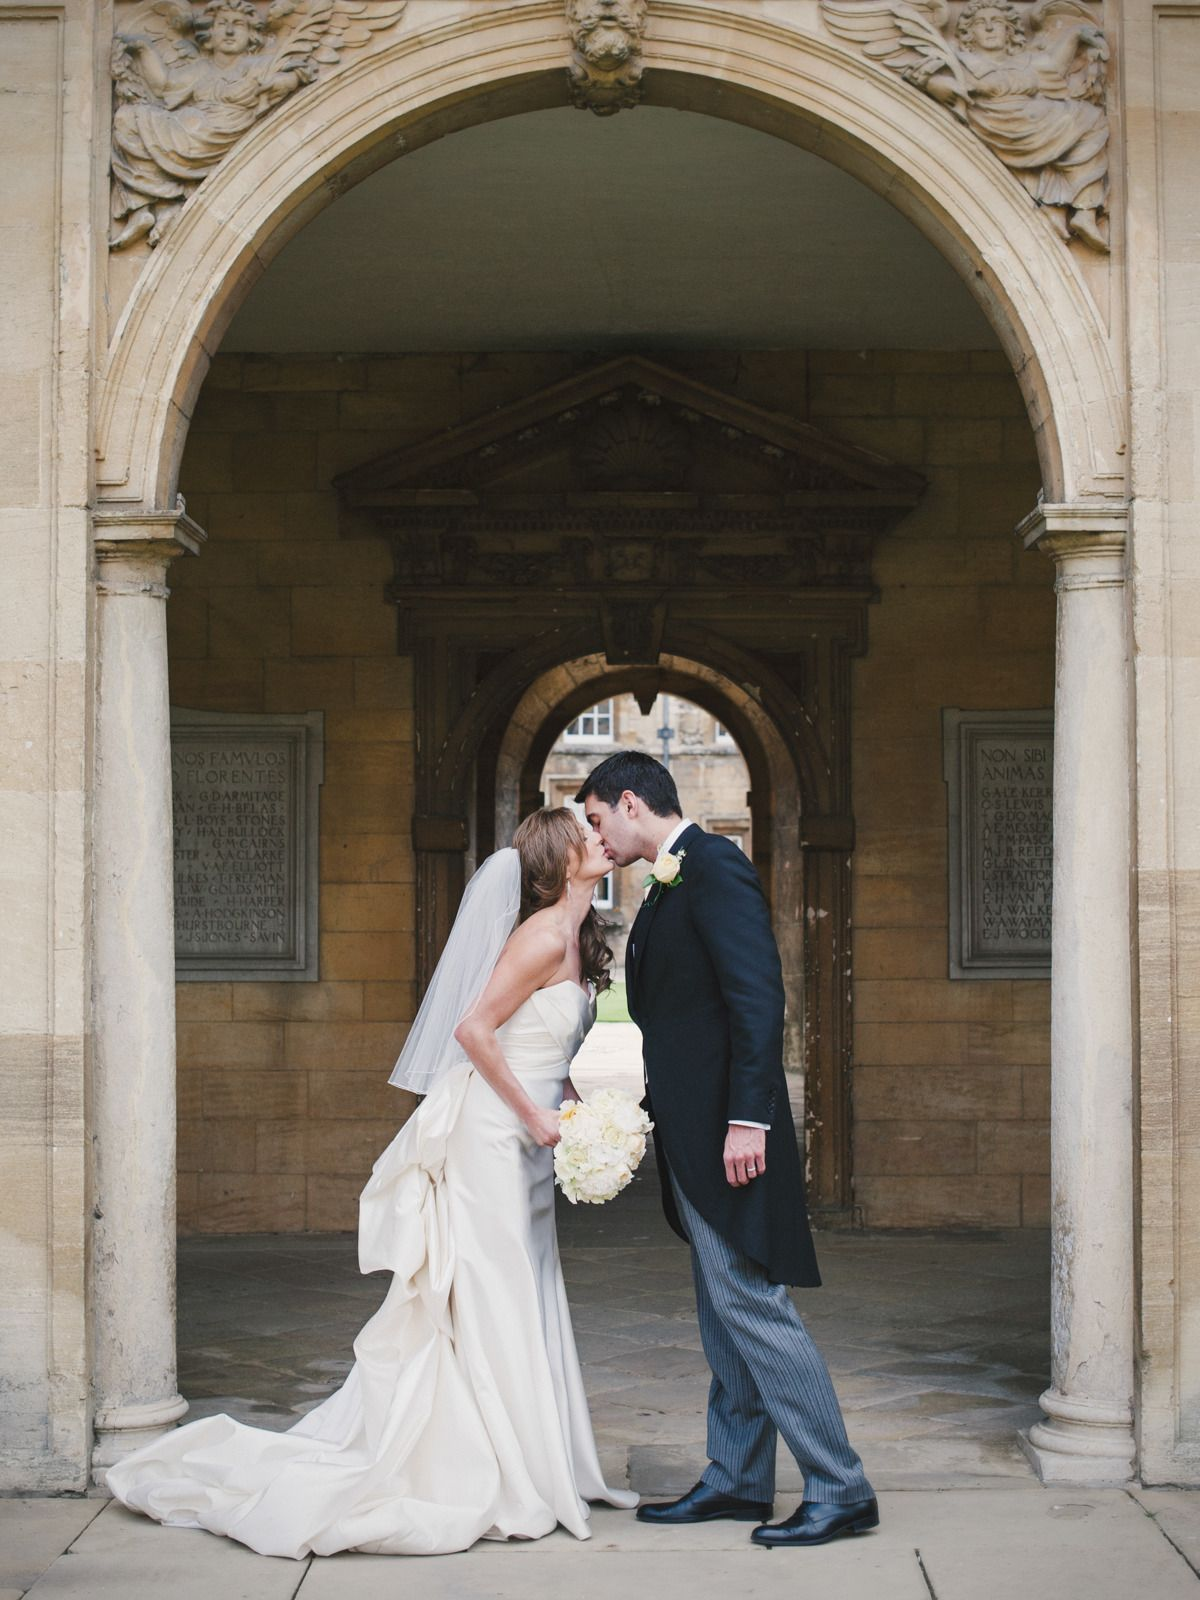 Classic english wedding at the bodleian library weddings uk bride